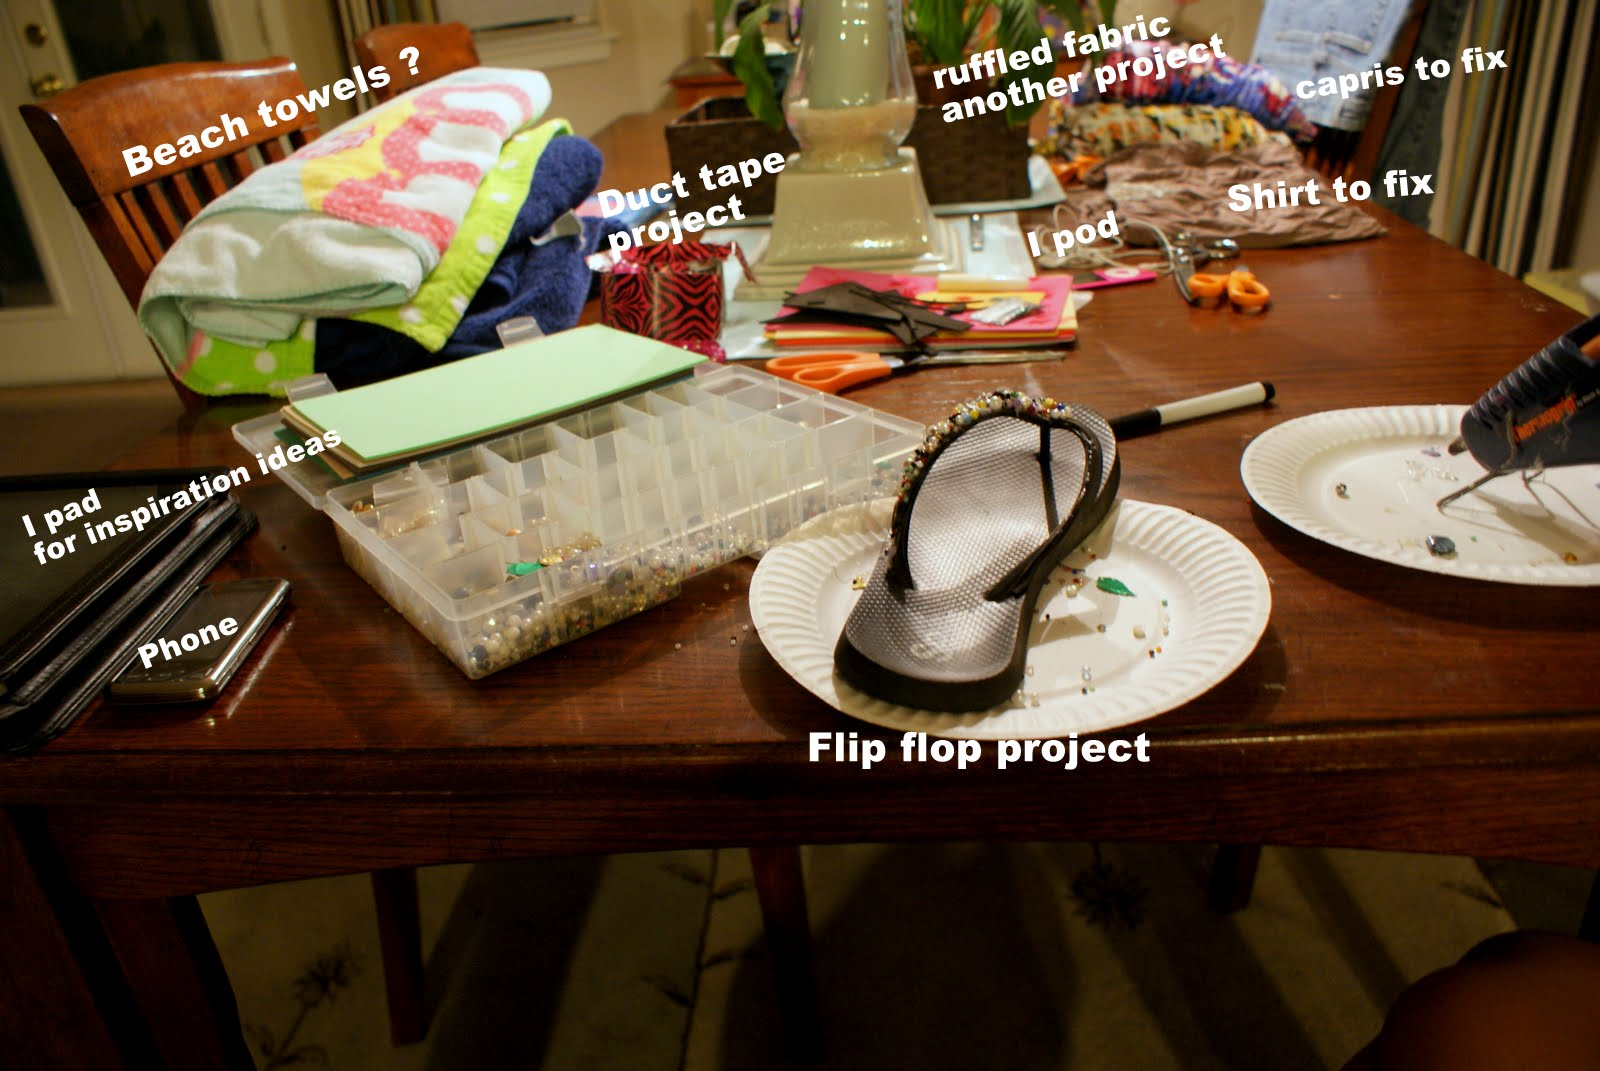 07c98100c9da0 Just thought I would let you guys in on a little secret. I take over our  dining room table with my projects and stuff. It s really bad but this is  how I ...